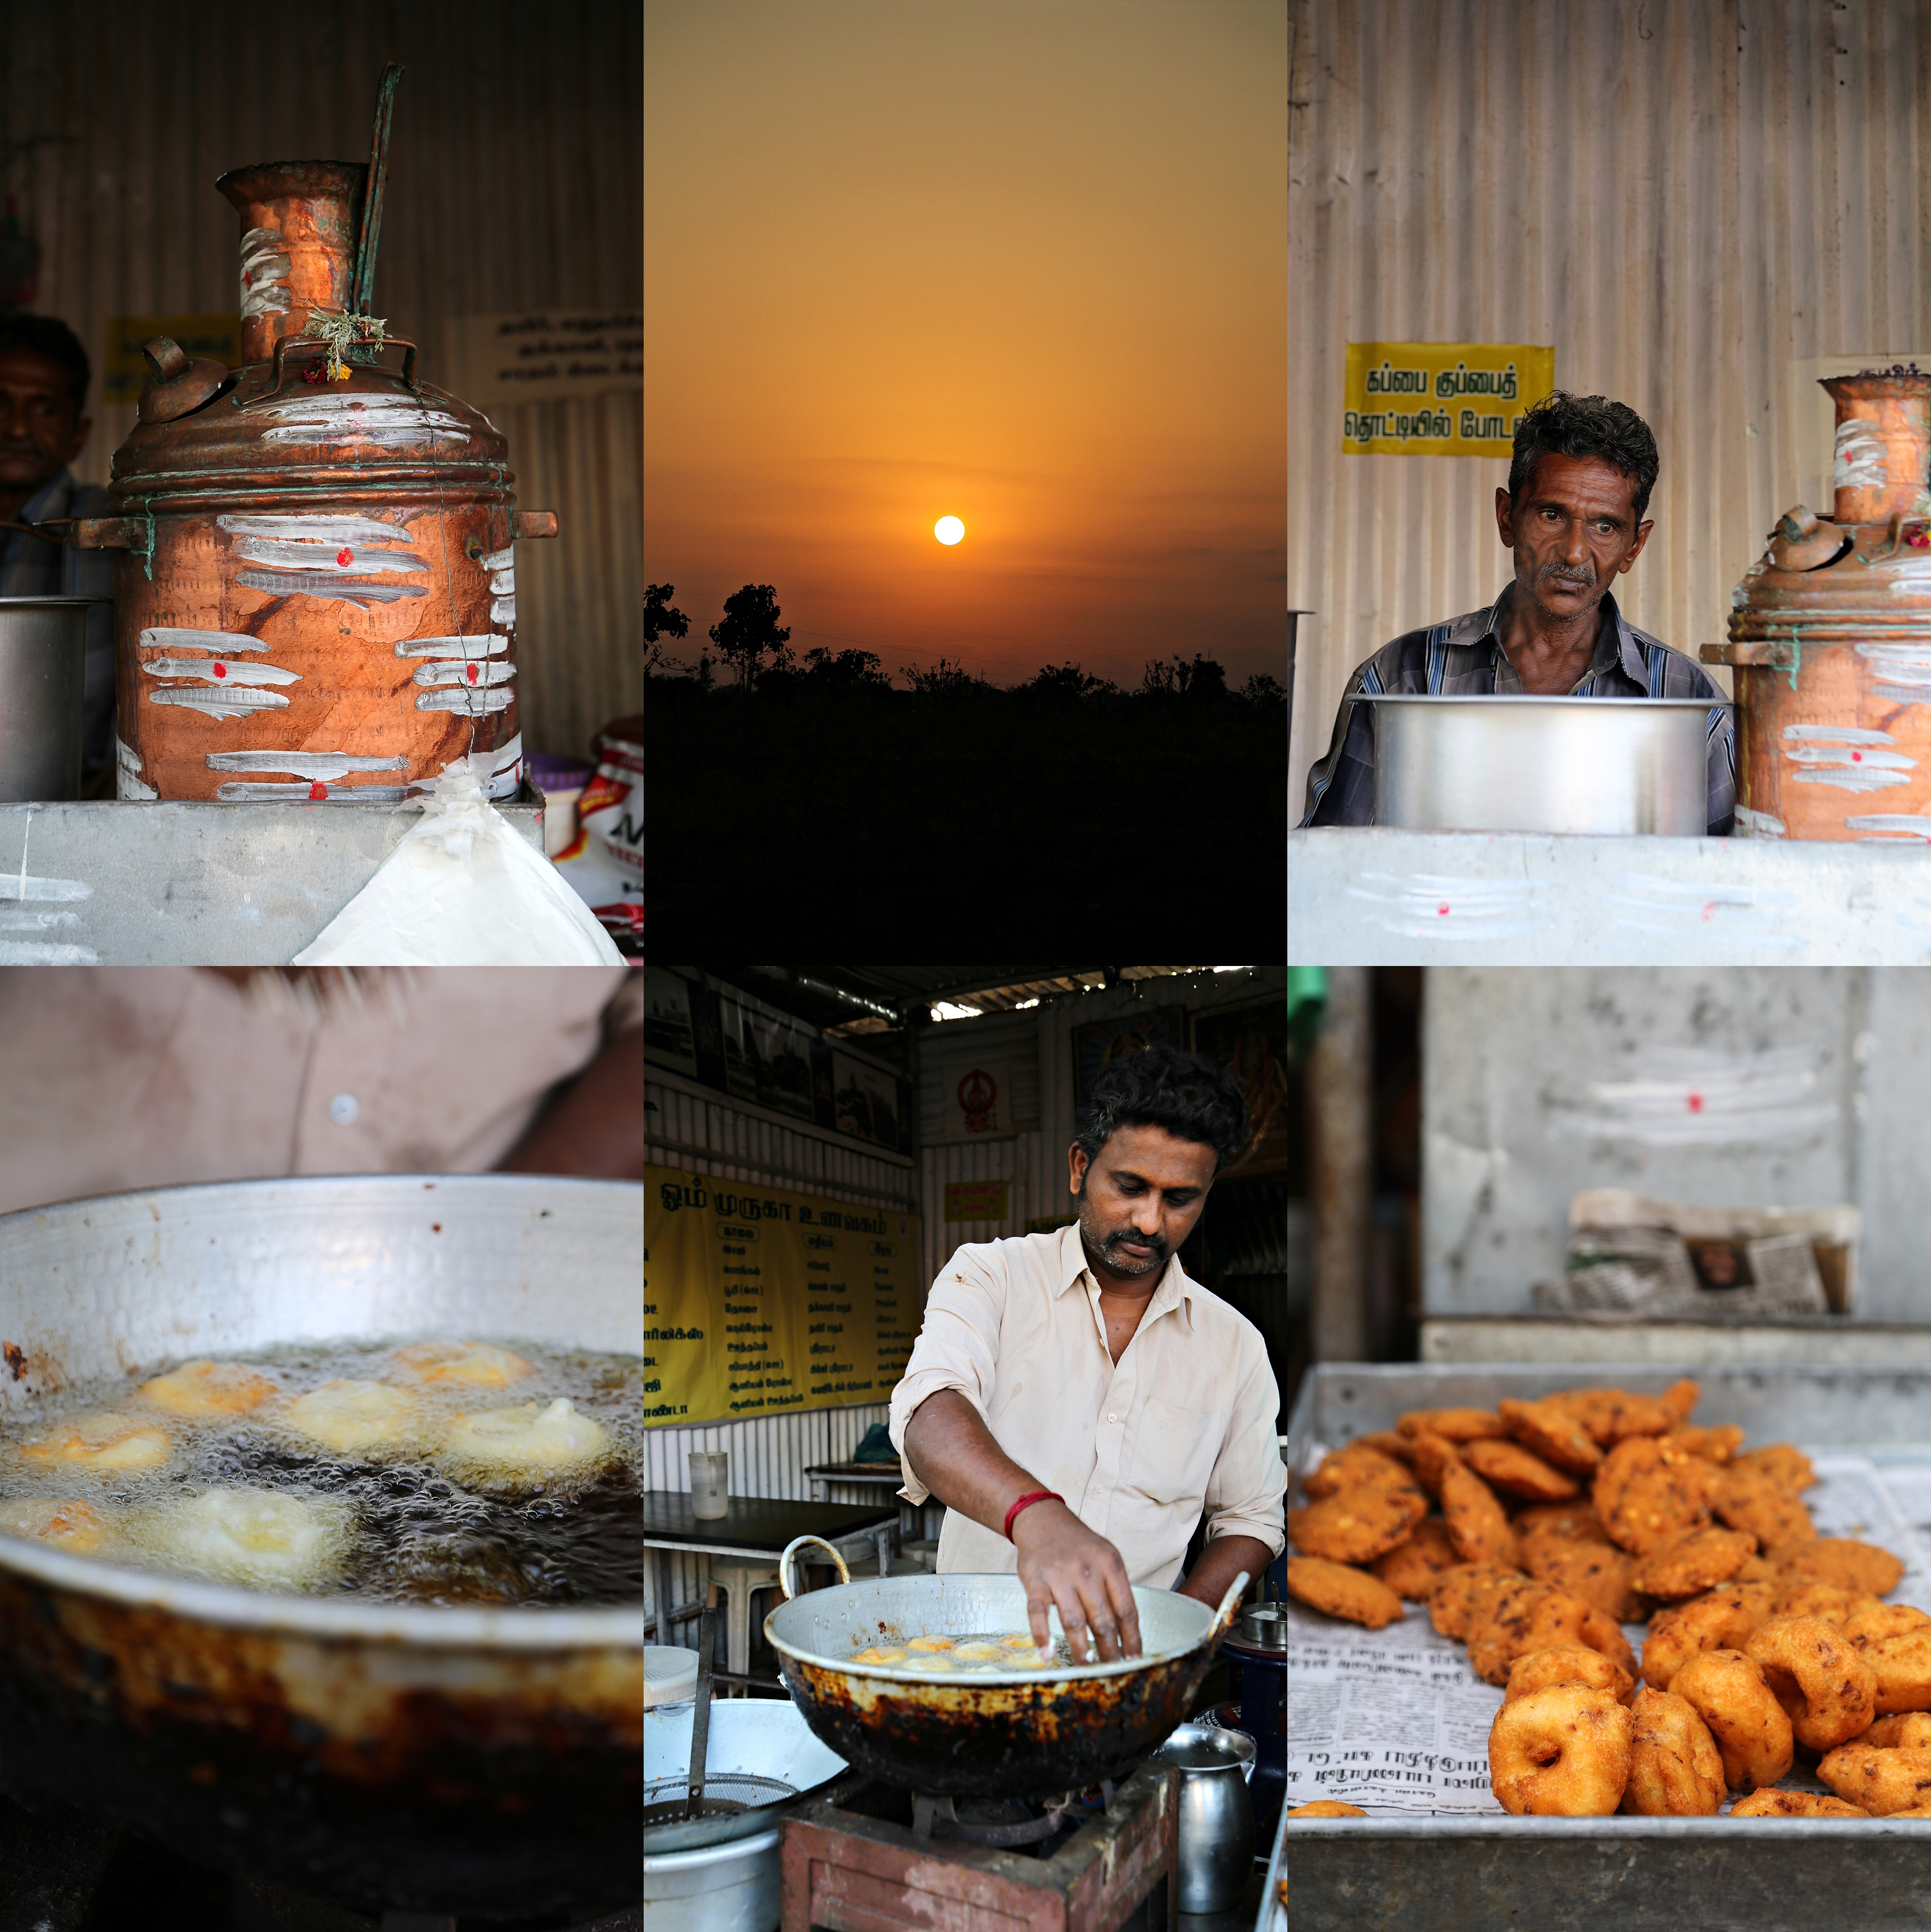 Street Breakfast, Chettinad, South India